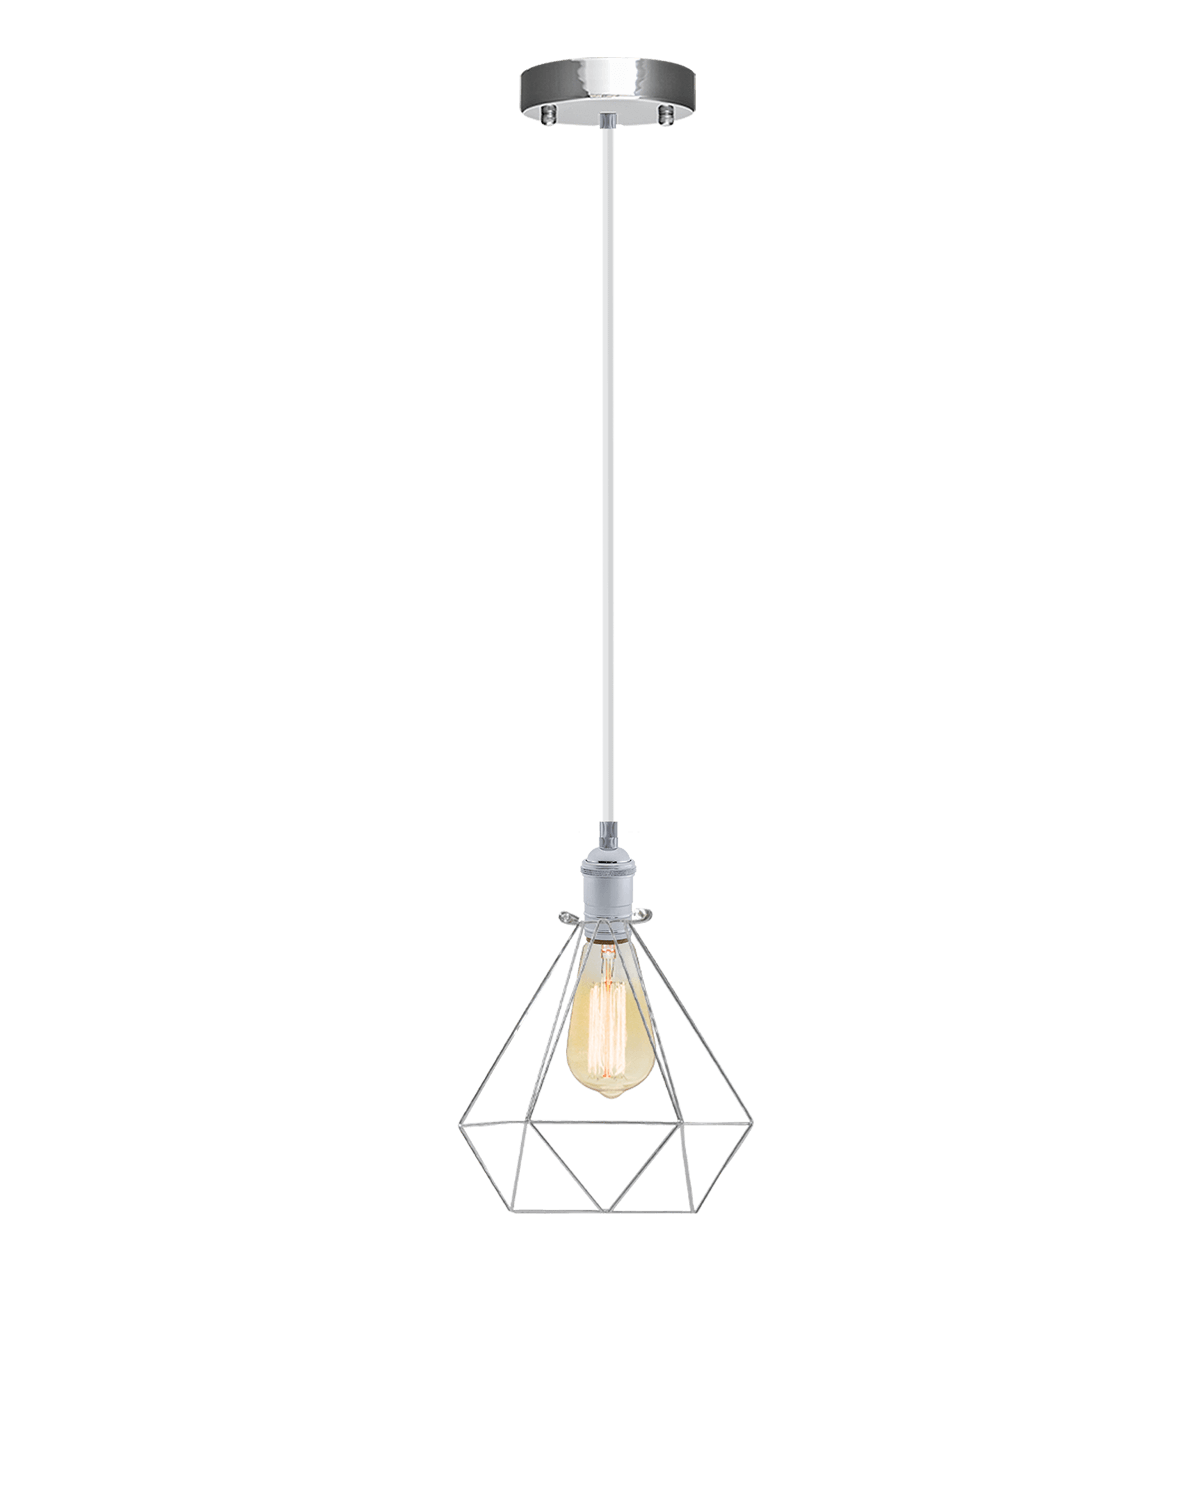 Single Pendant: White and Chrome Diamond Cage Hangout Lighting